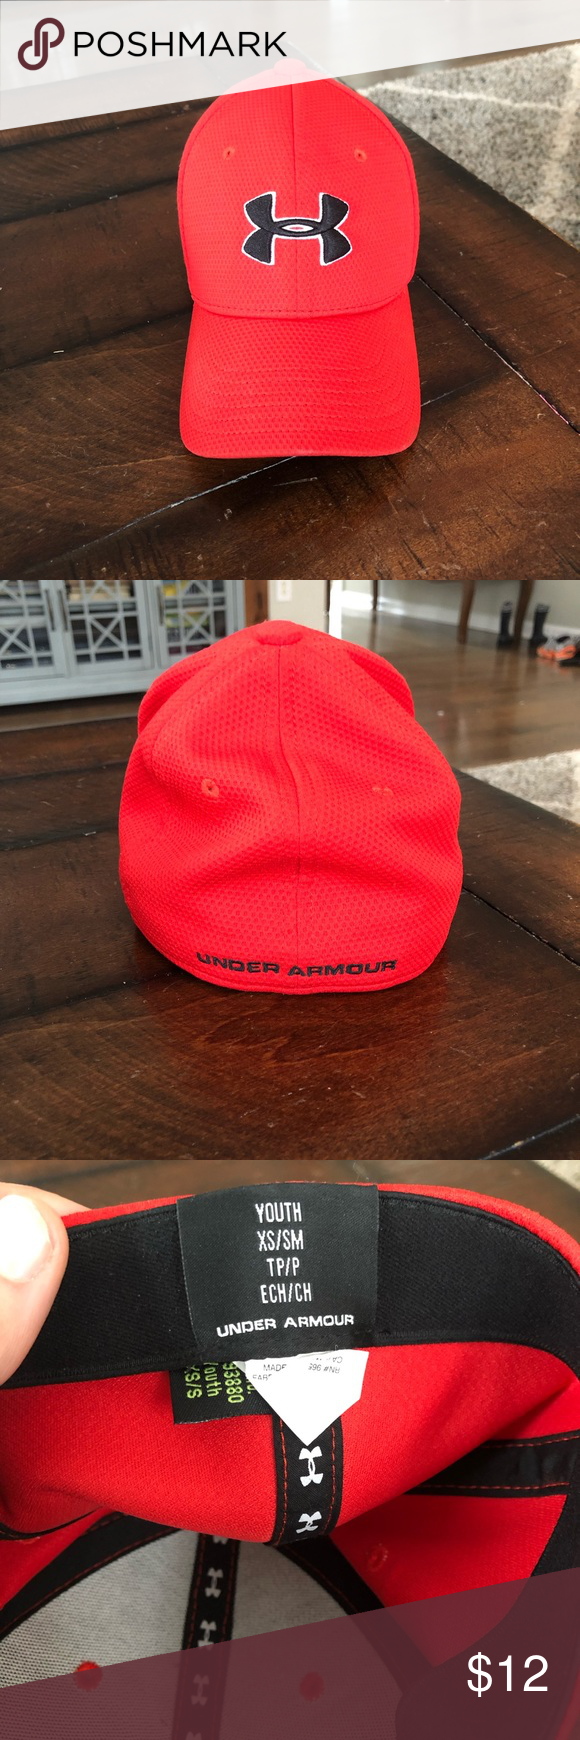 f76f0d5d5b5 Boys Under Armour Hat Good condition. Red